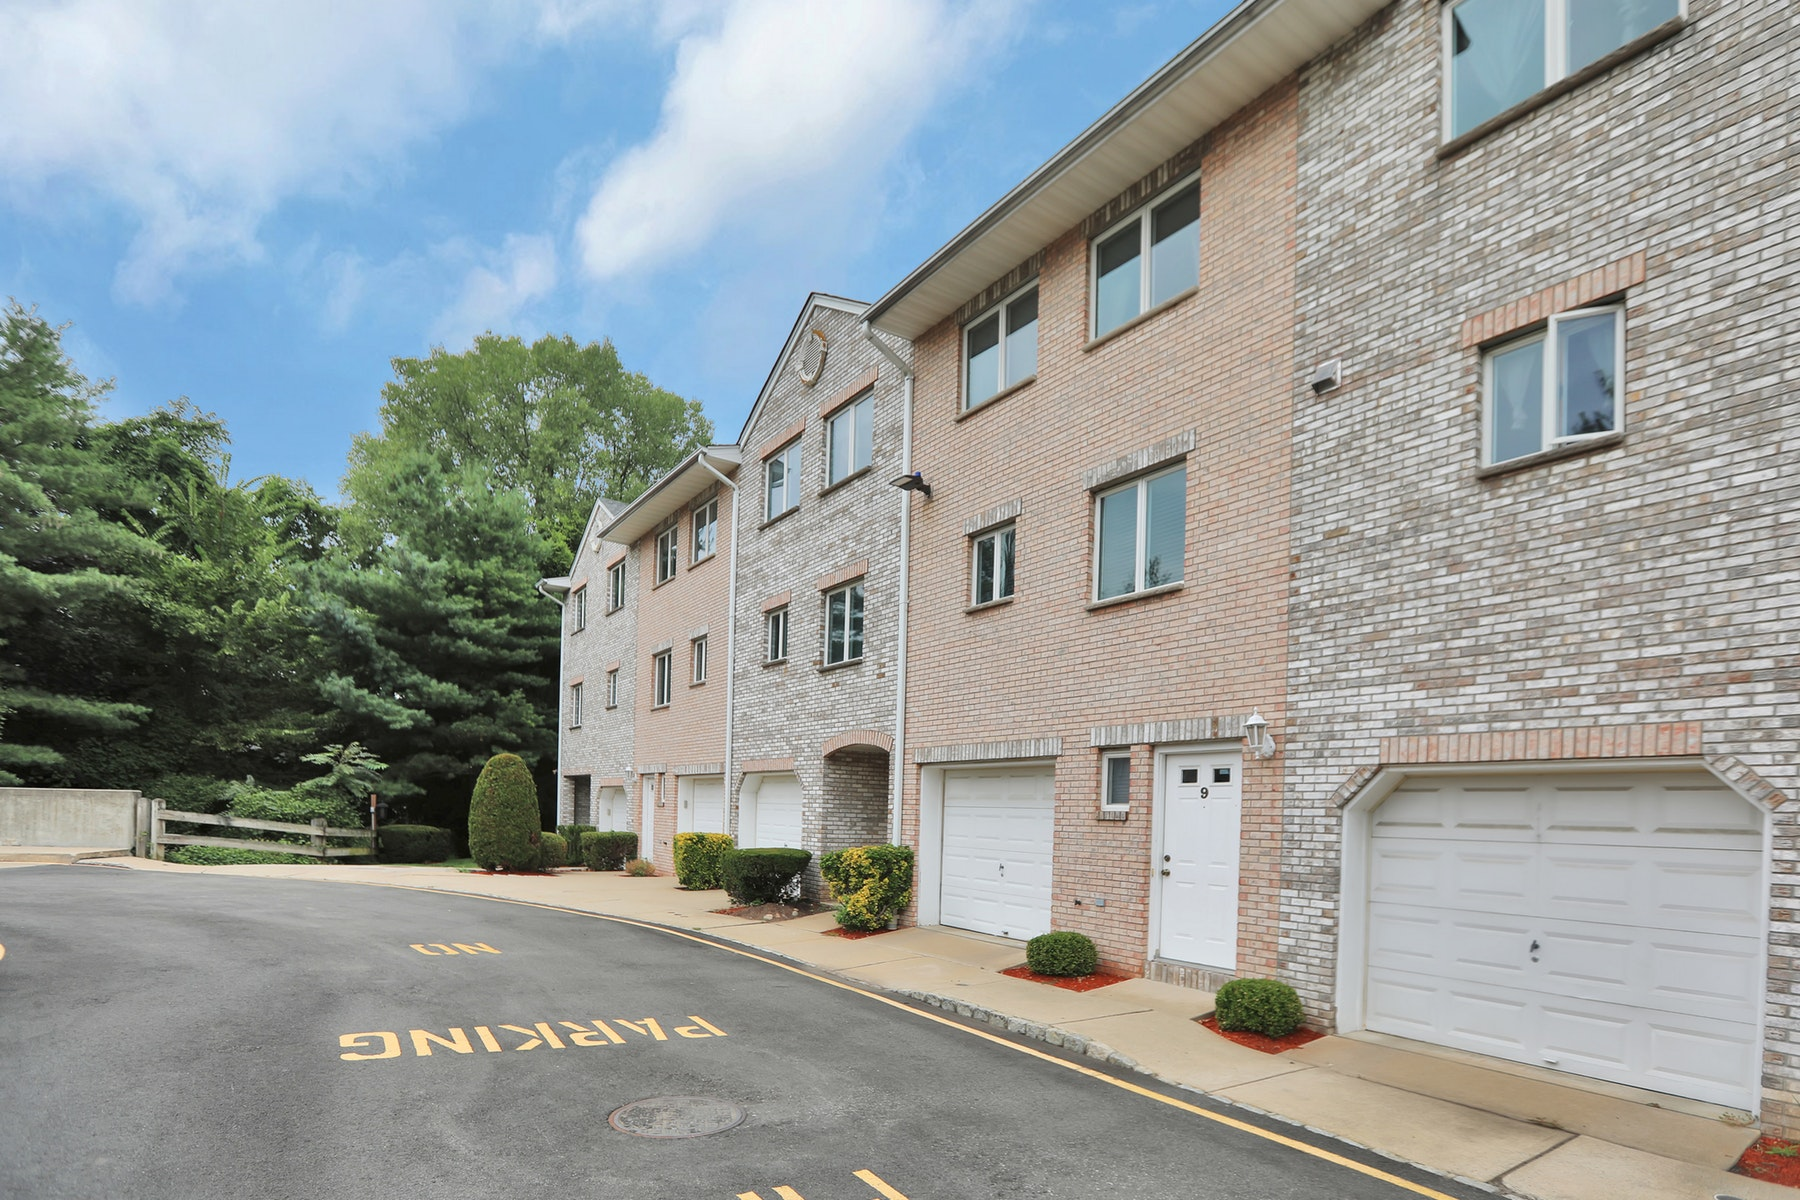 townhouses for Sale at Village Park of Leonia 147 Schor Ave #8 Leonia, New Jersey 07605 United States